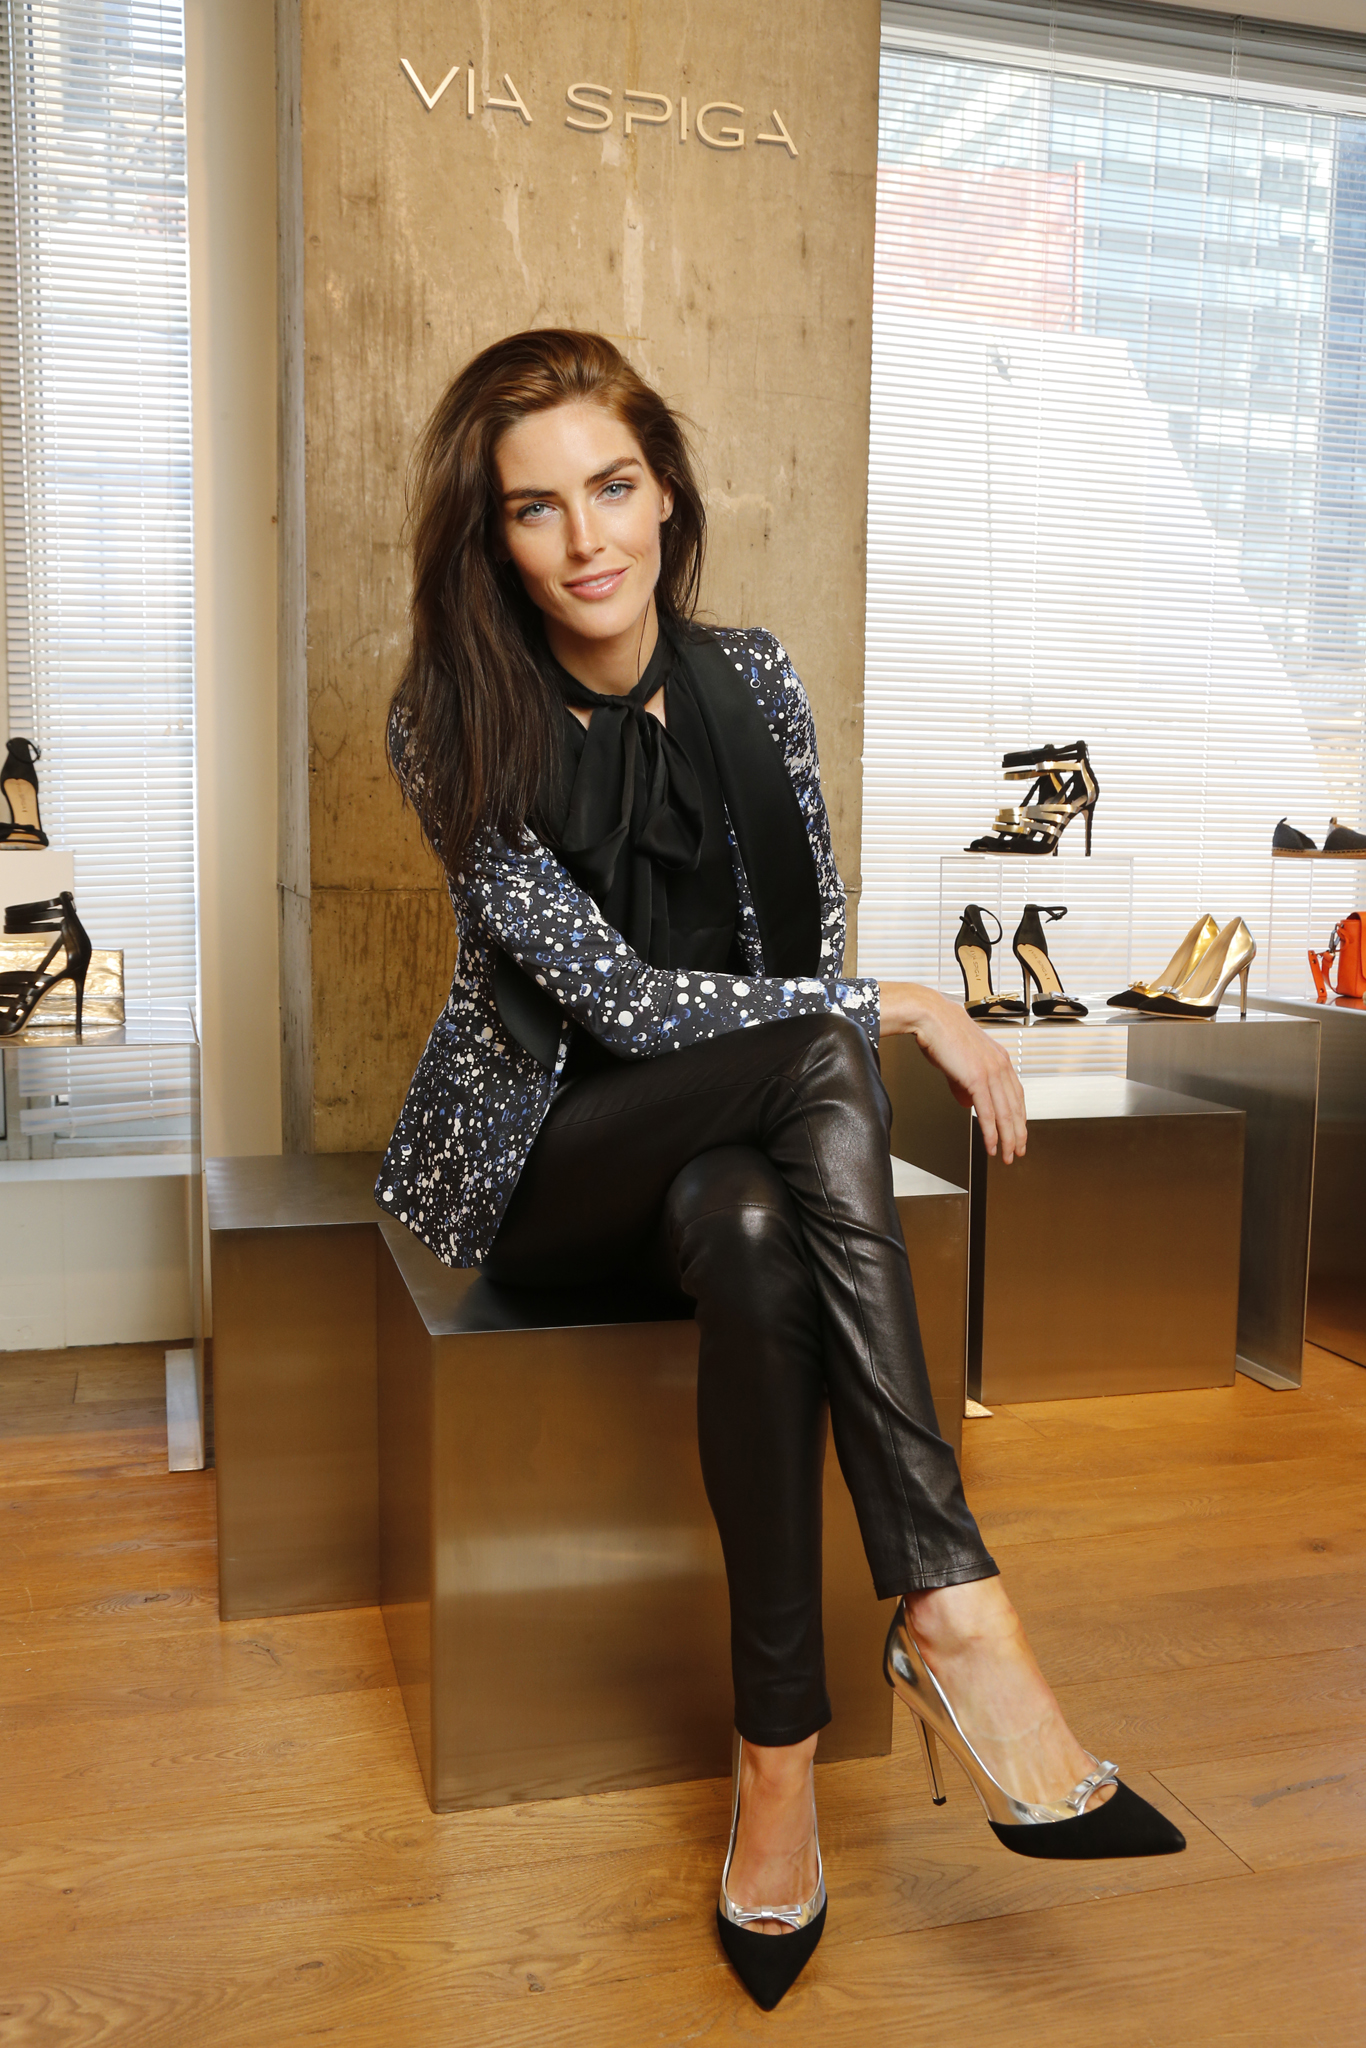 Hilary Rhoda wearing a look from her holiday capsule collection for Via Spiga.